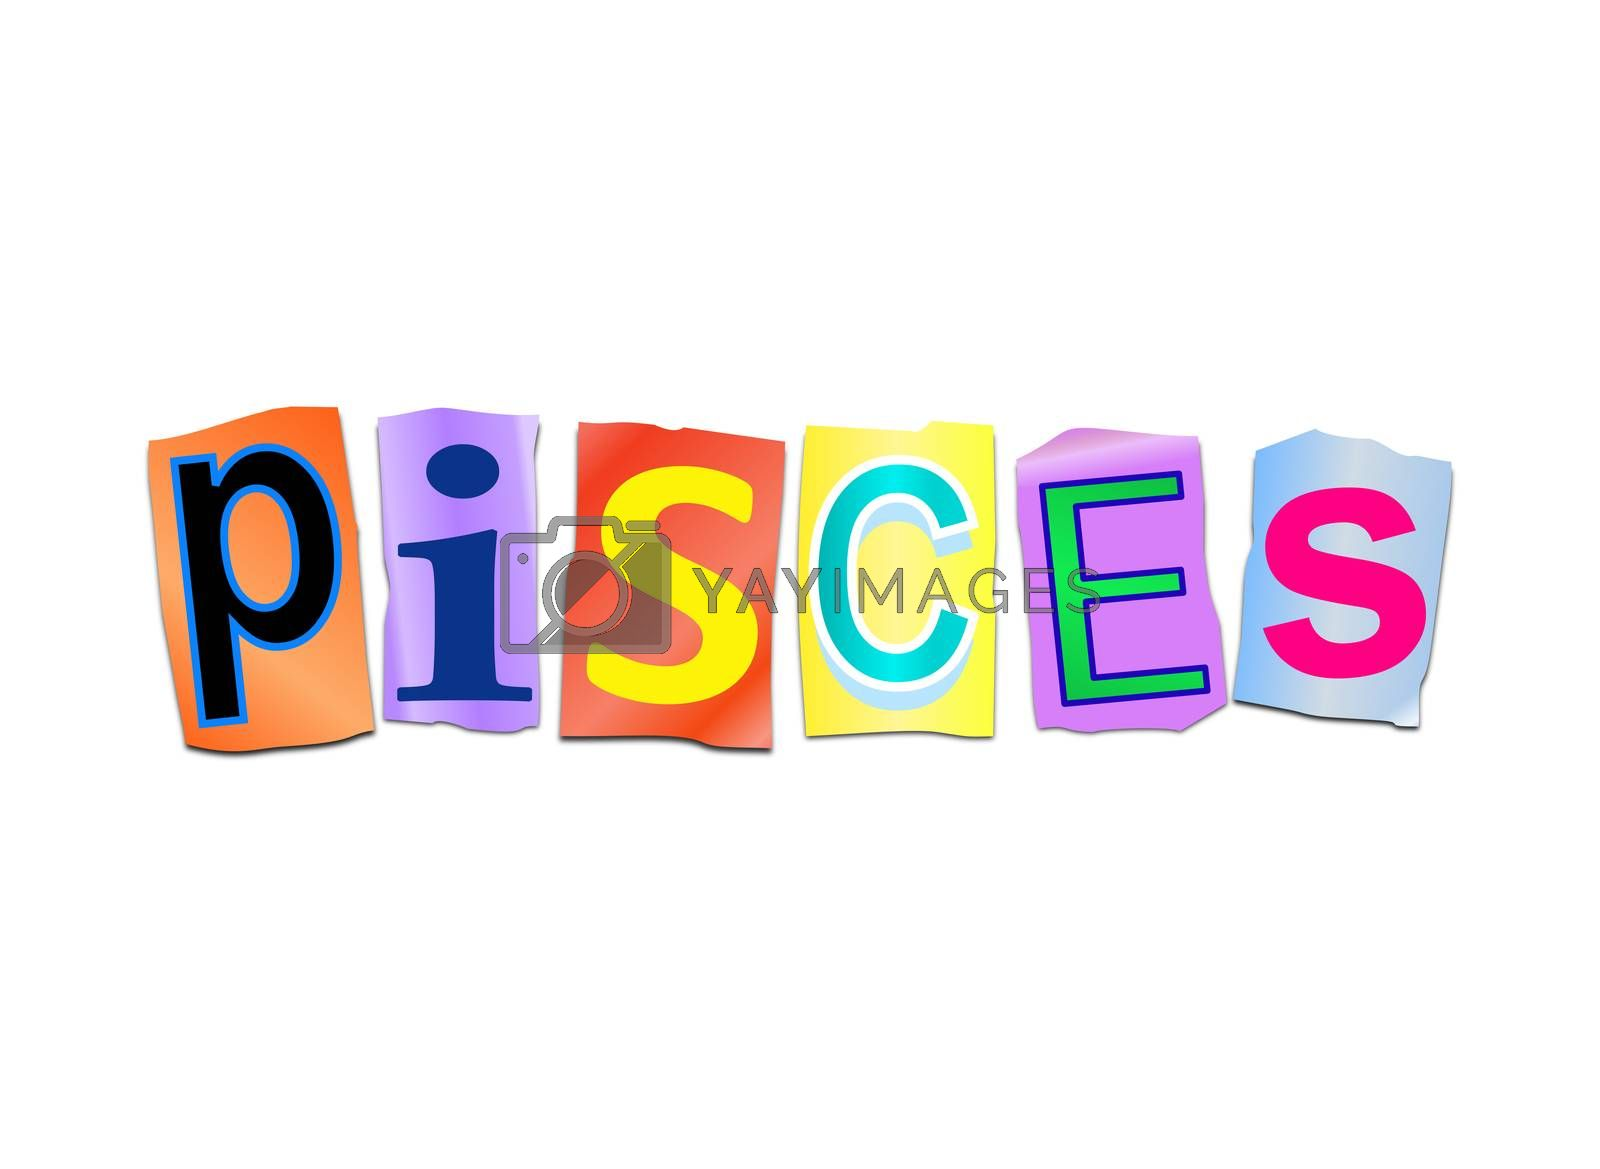 Illustration depicting a set of cut out printed letters arranged to form the word pisces.